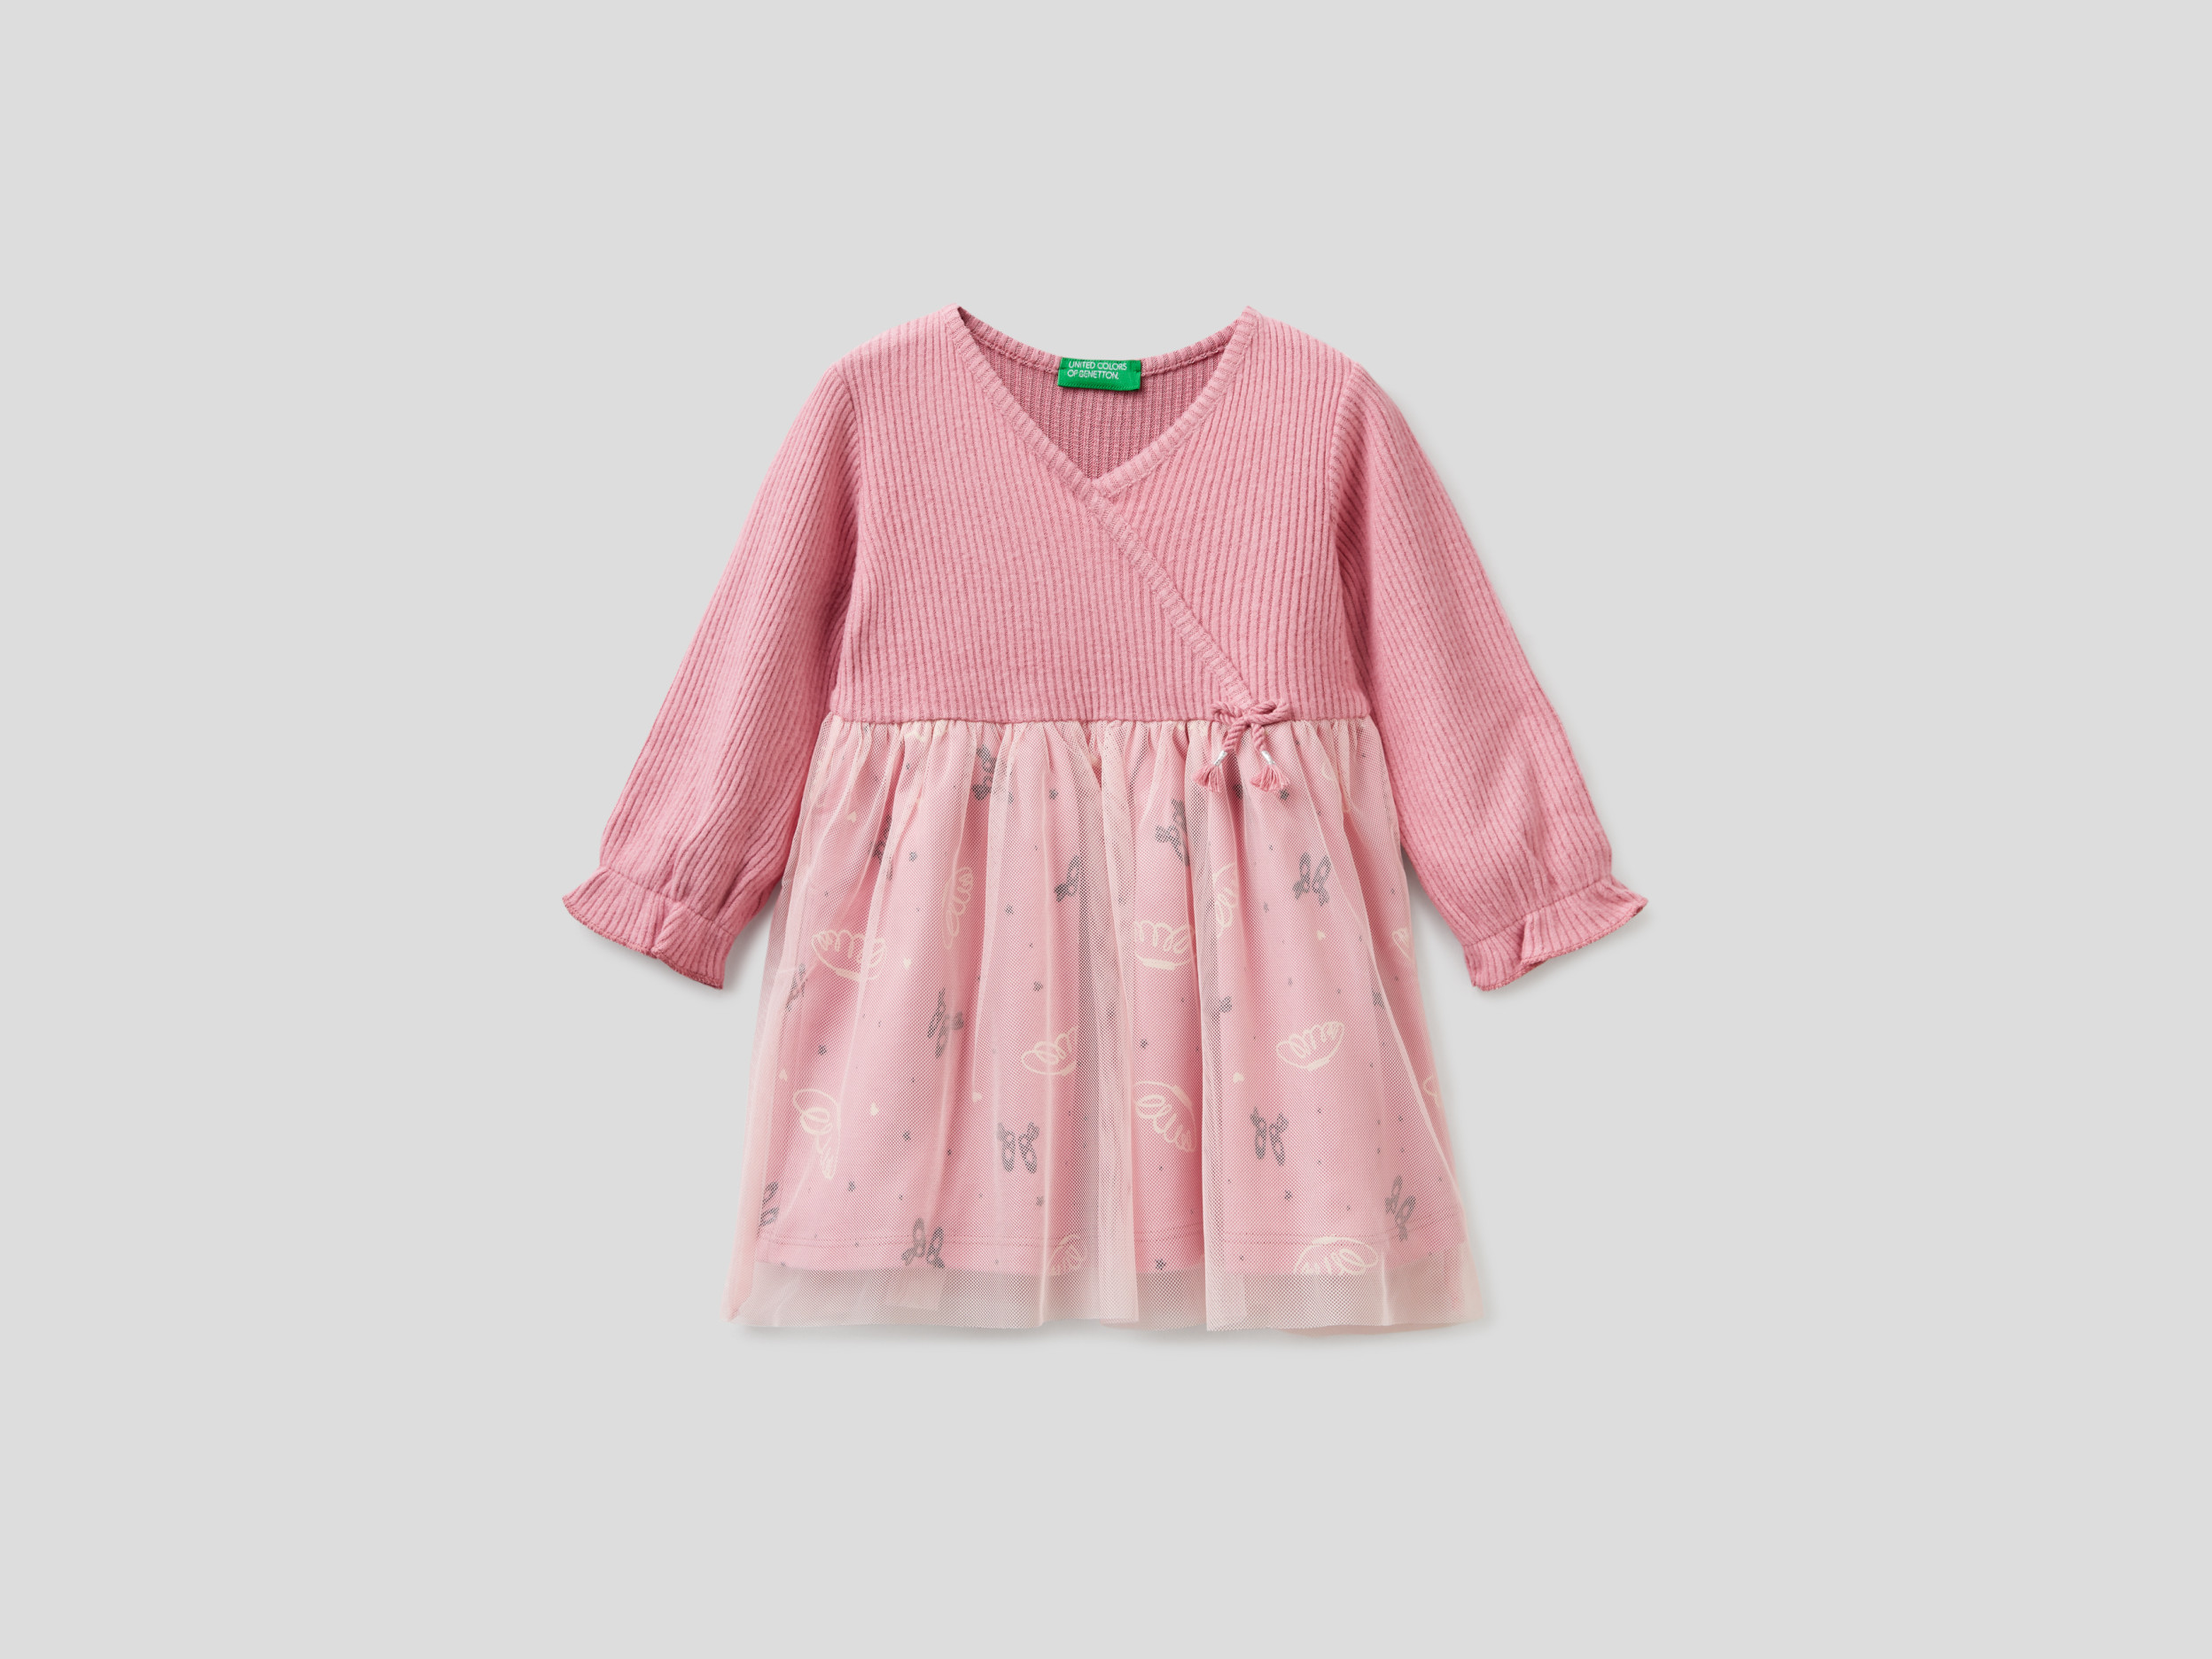 Benetton, Dress With Tulle Layer, size , Pink, Kids